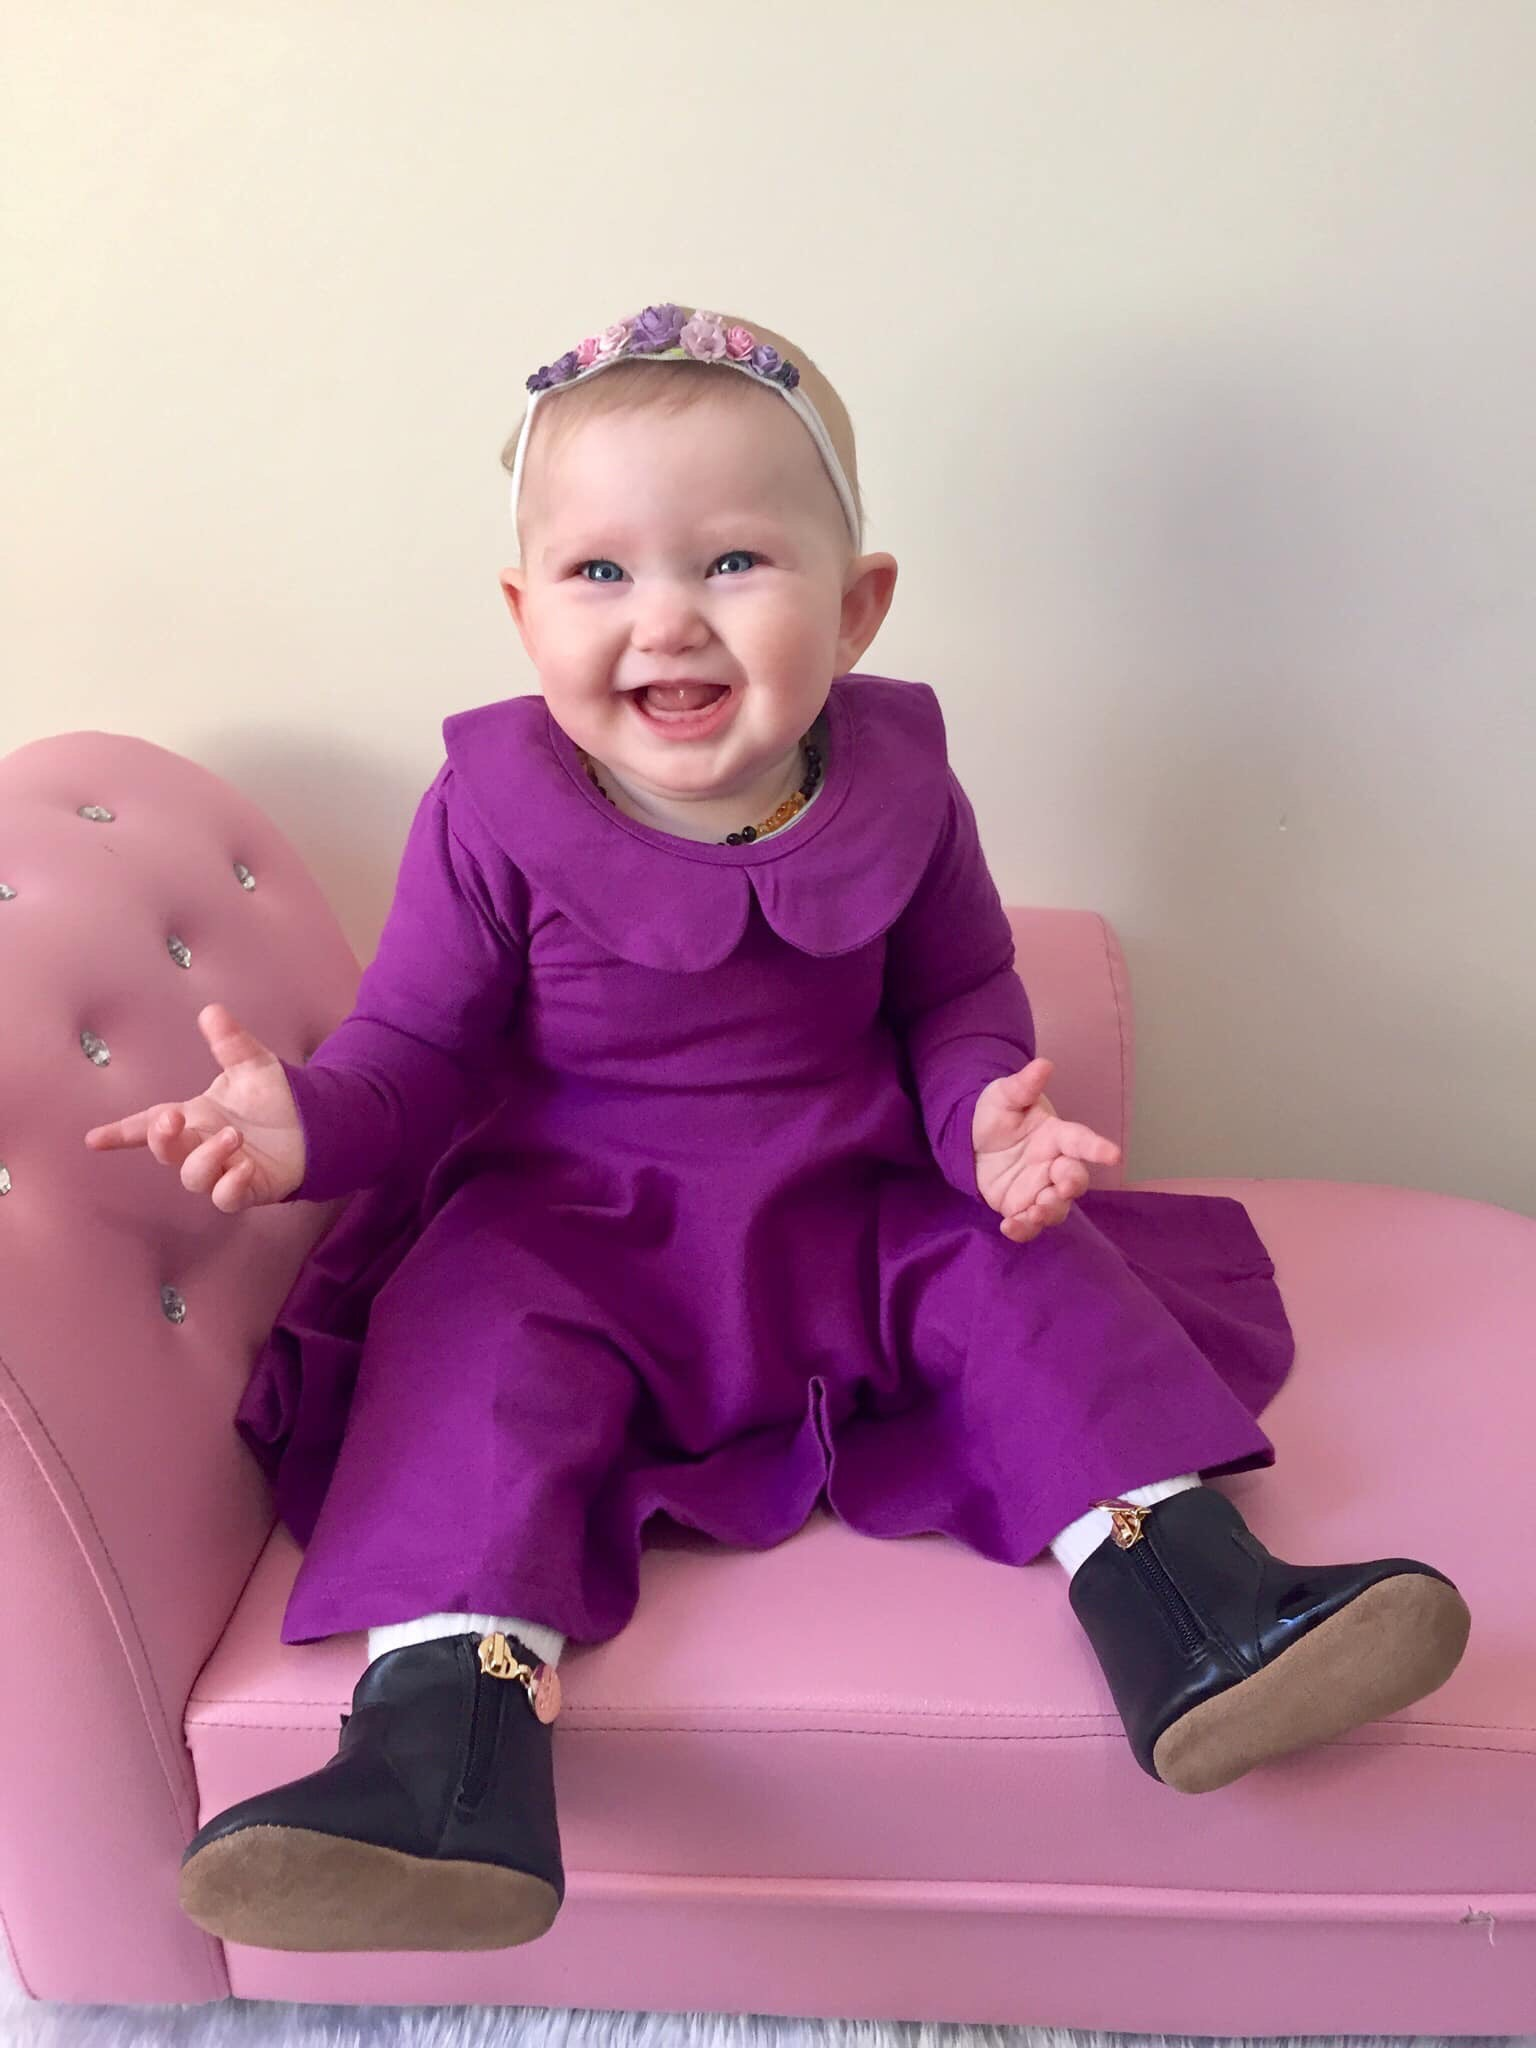 Baby smiling while on violet twirly dress